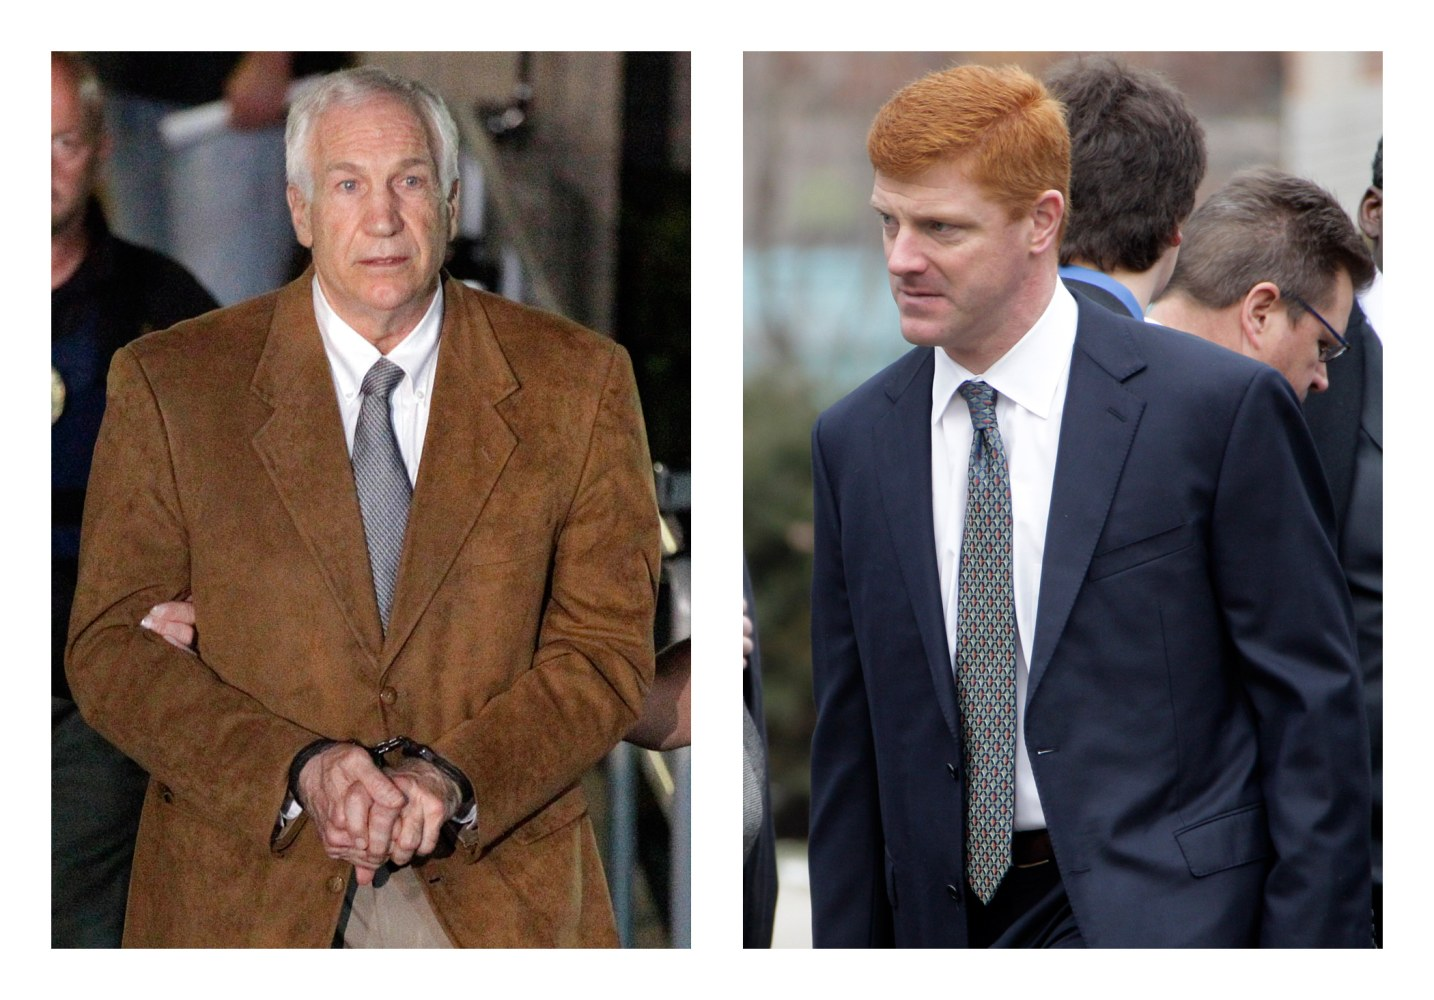 McQueary Whistleblower Lawsuit Against Penn State Goes to Trial